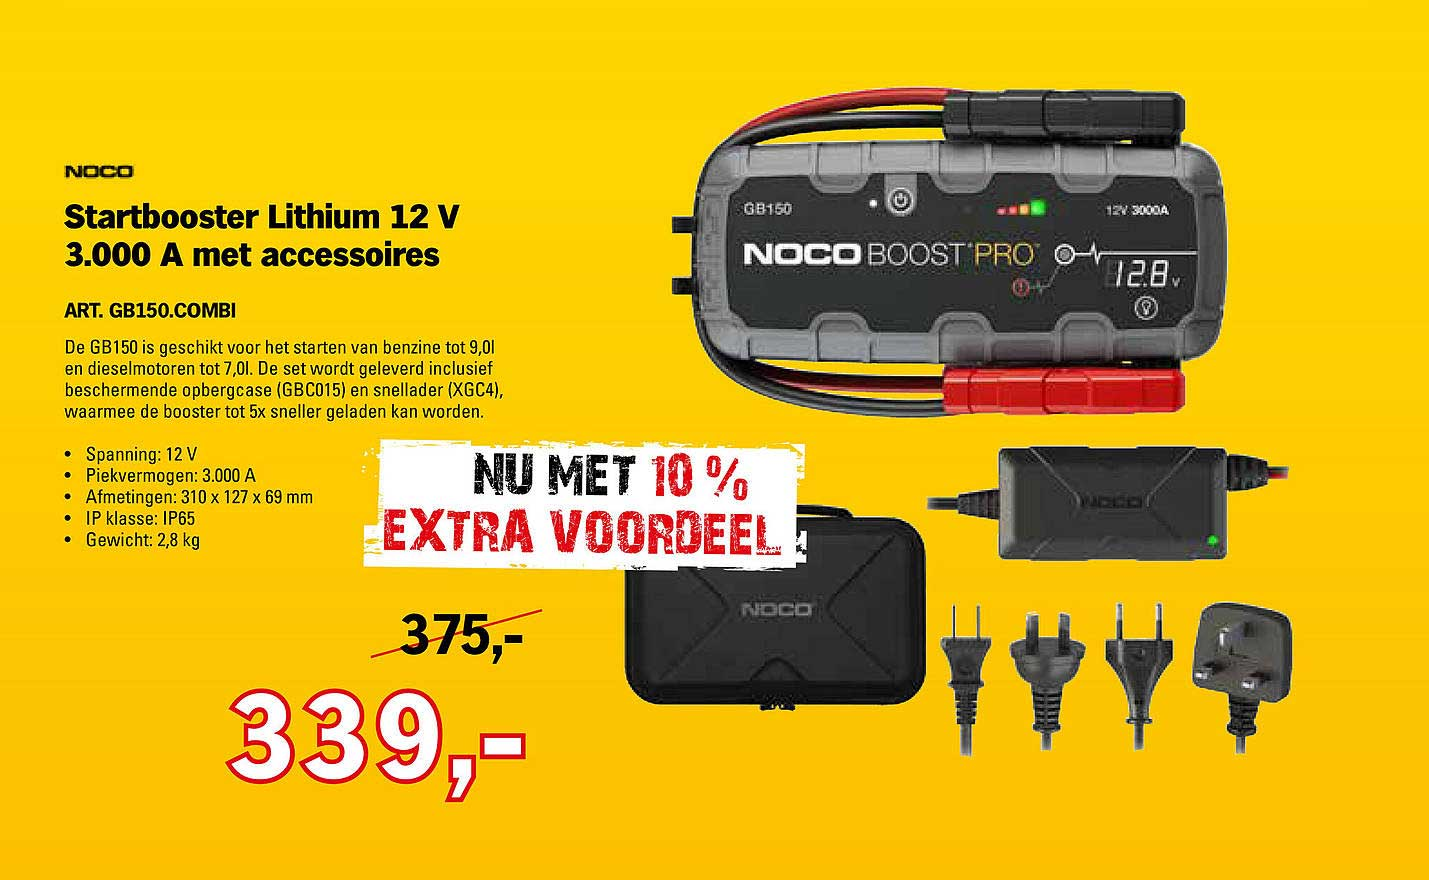 Toolspecial Noco Startbooster Lithium 12 V 3.000 A Met Accessoires